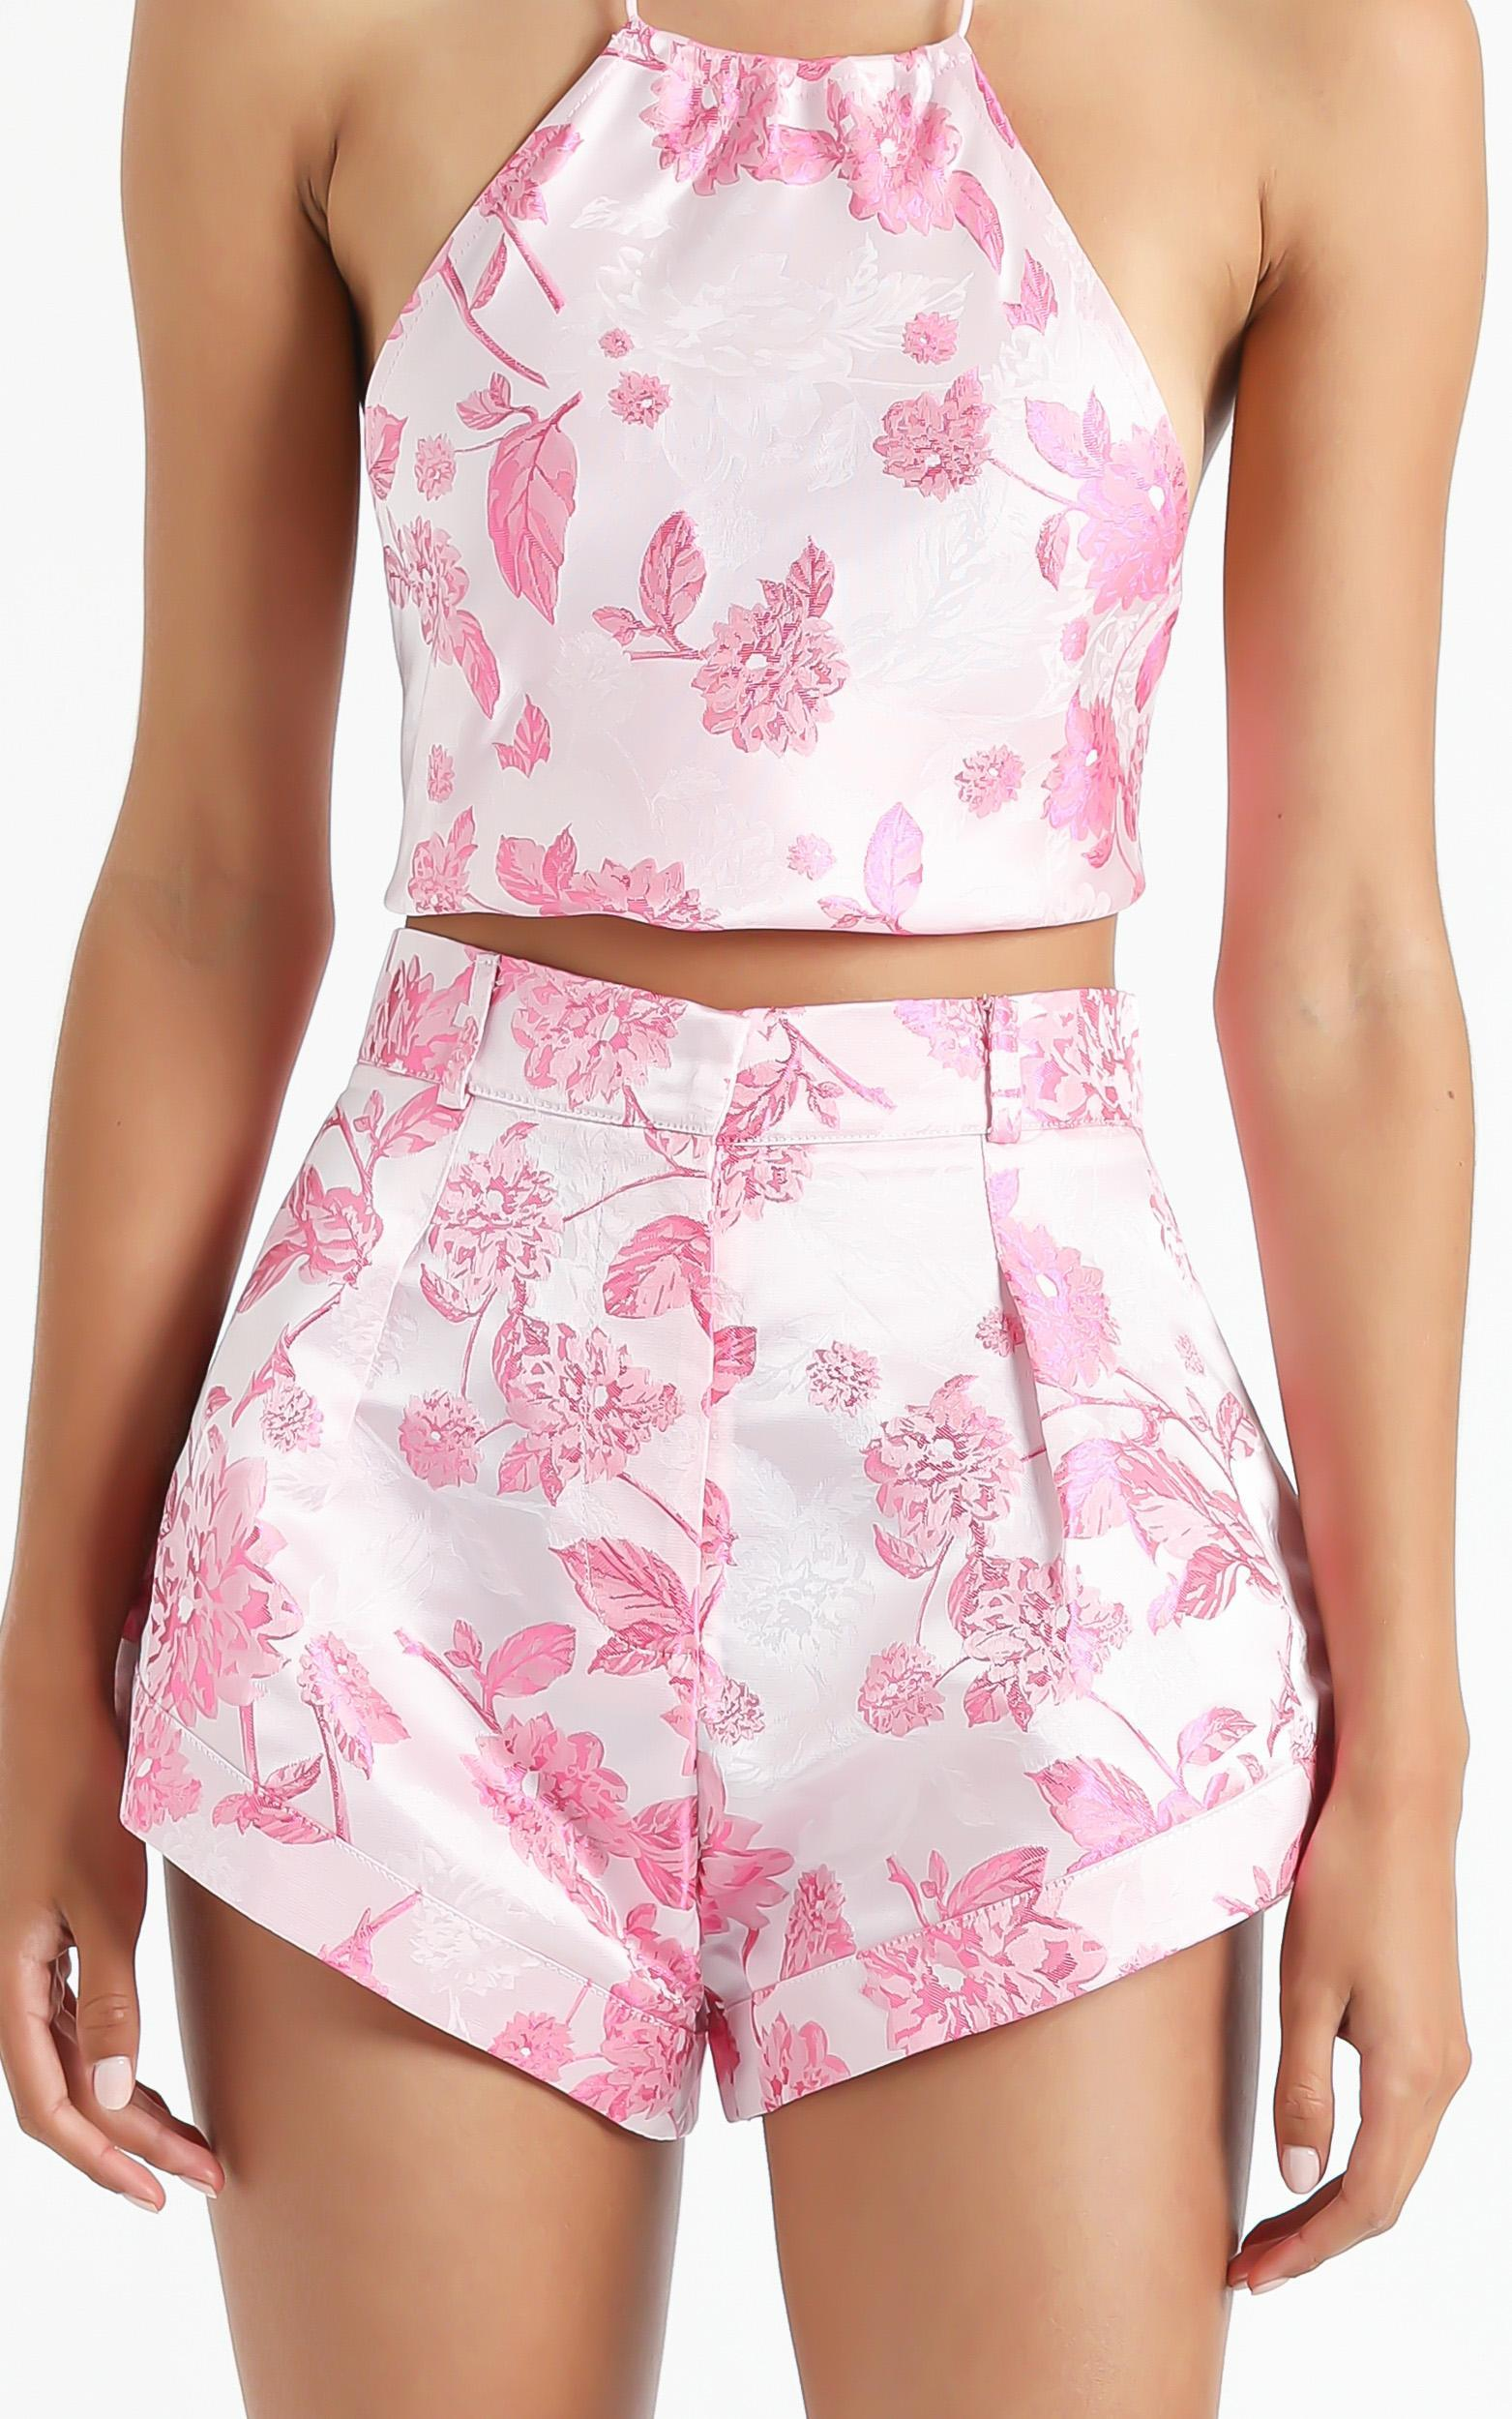 Lioness - In Bloom Mini Short in Pink - XS, Pink, hi-res image number null